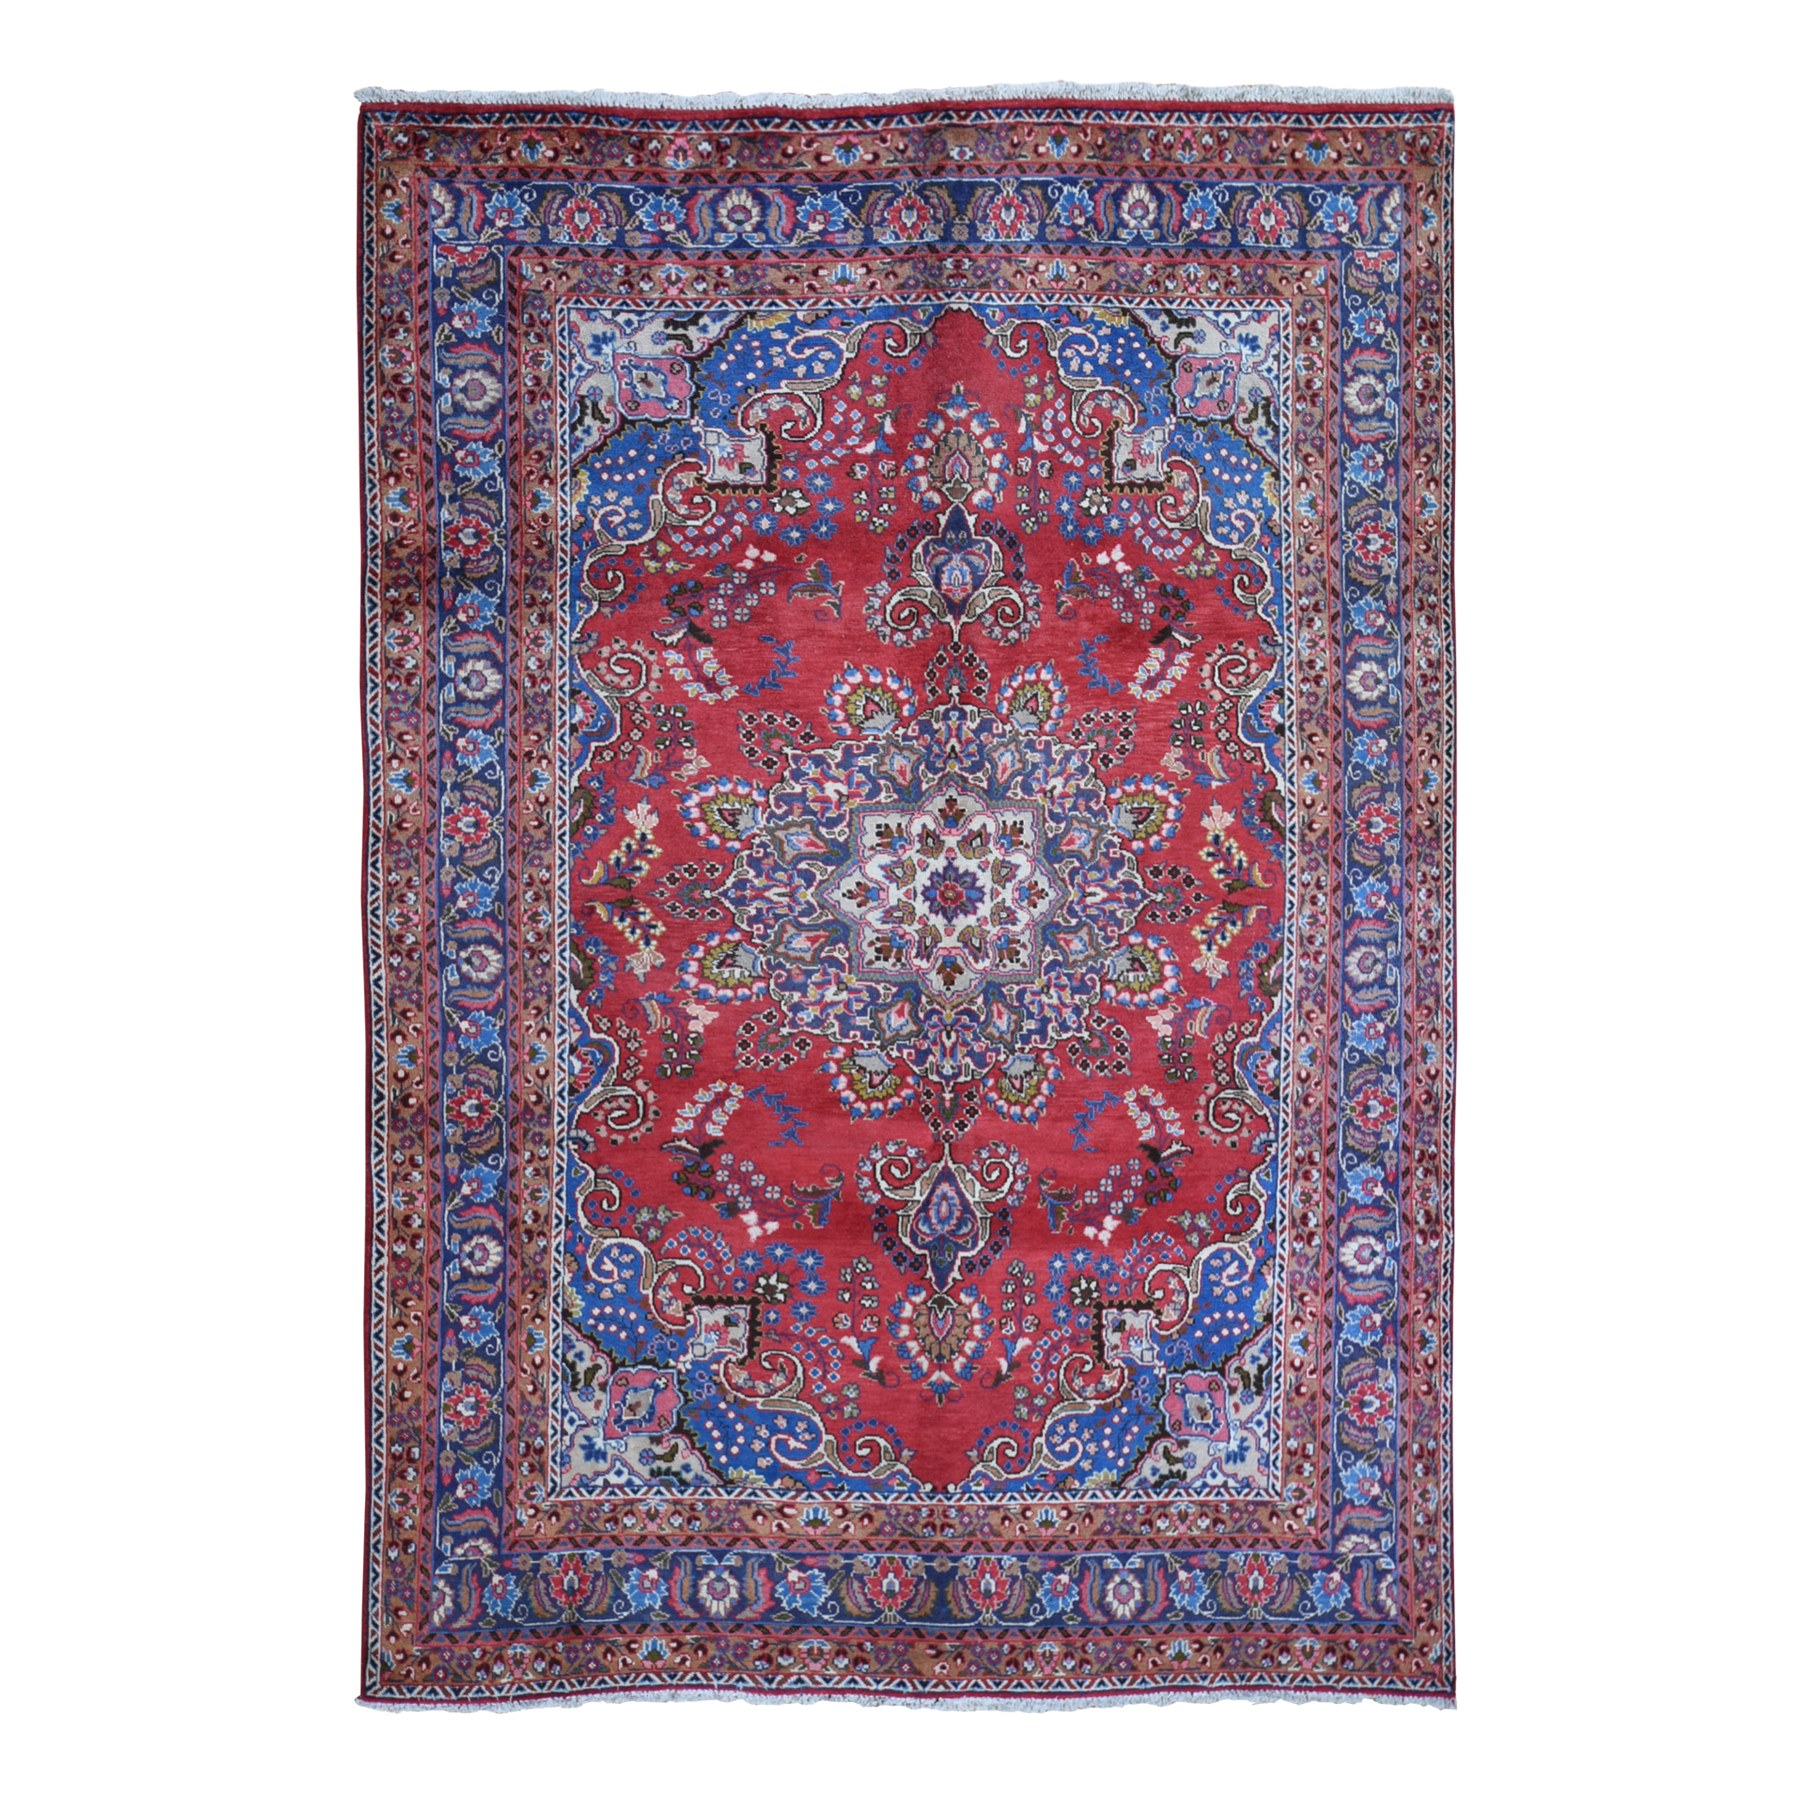 "6'6""x9'5"" Vintage Persian Tabriz Excellent Condition Full Pile Soft Hand Woven Oriental Rug"